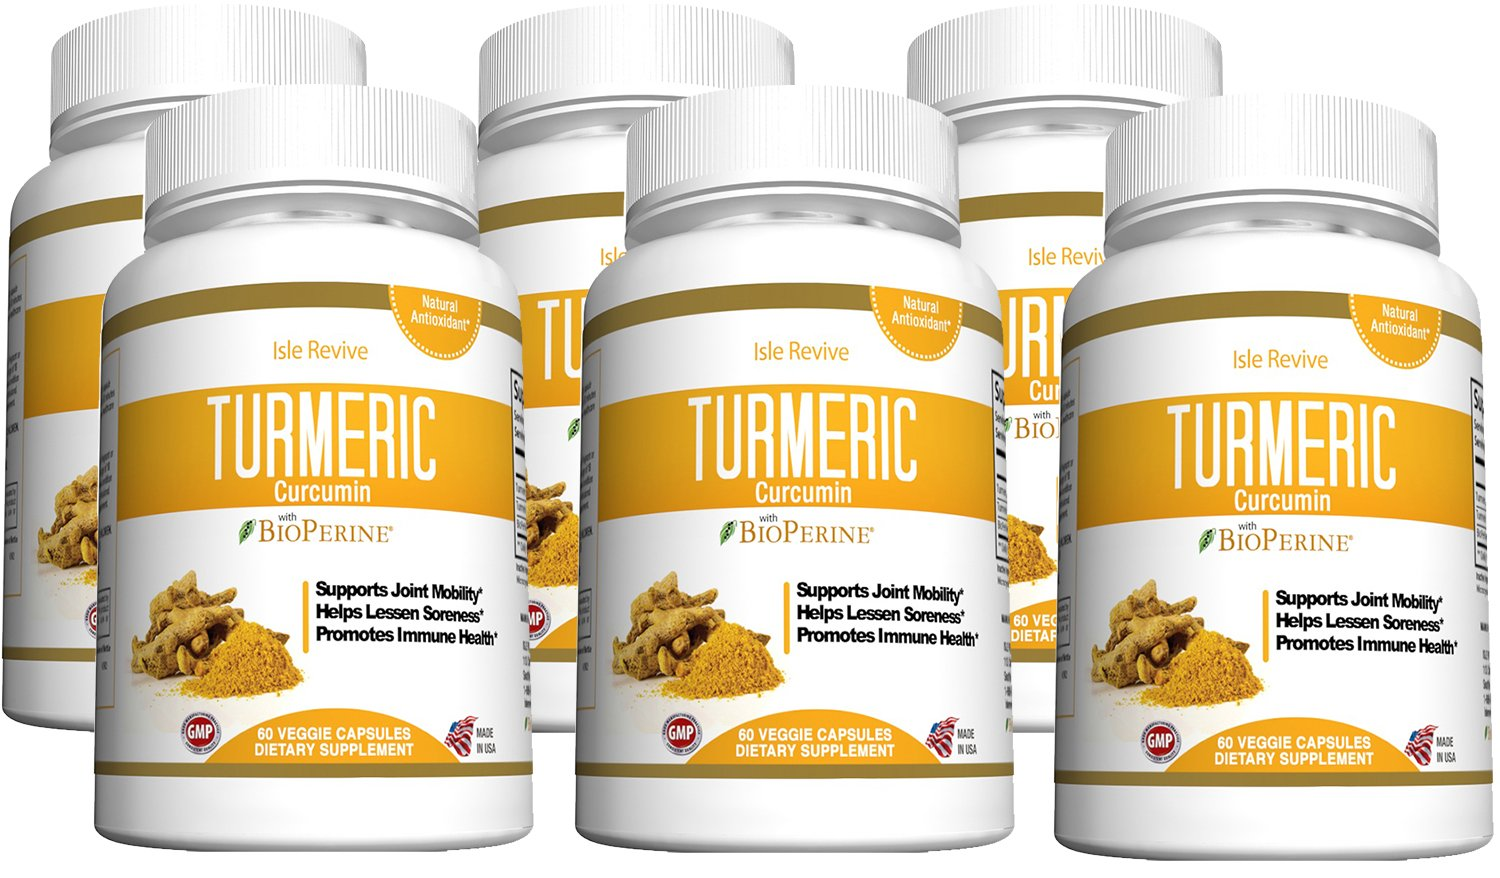 Turmeric Curcumin Powder Capsules with Bioperine - Highest Potency Joint and Wellness Energy Support with 95% Standardized Curcuminoids. Non-GMO, Gluten Free with Black Pepper - 6 Bottles Made in USA